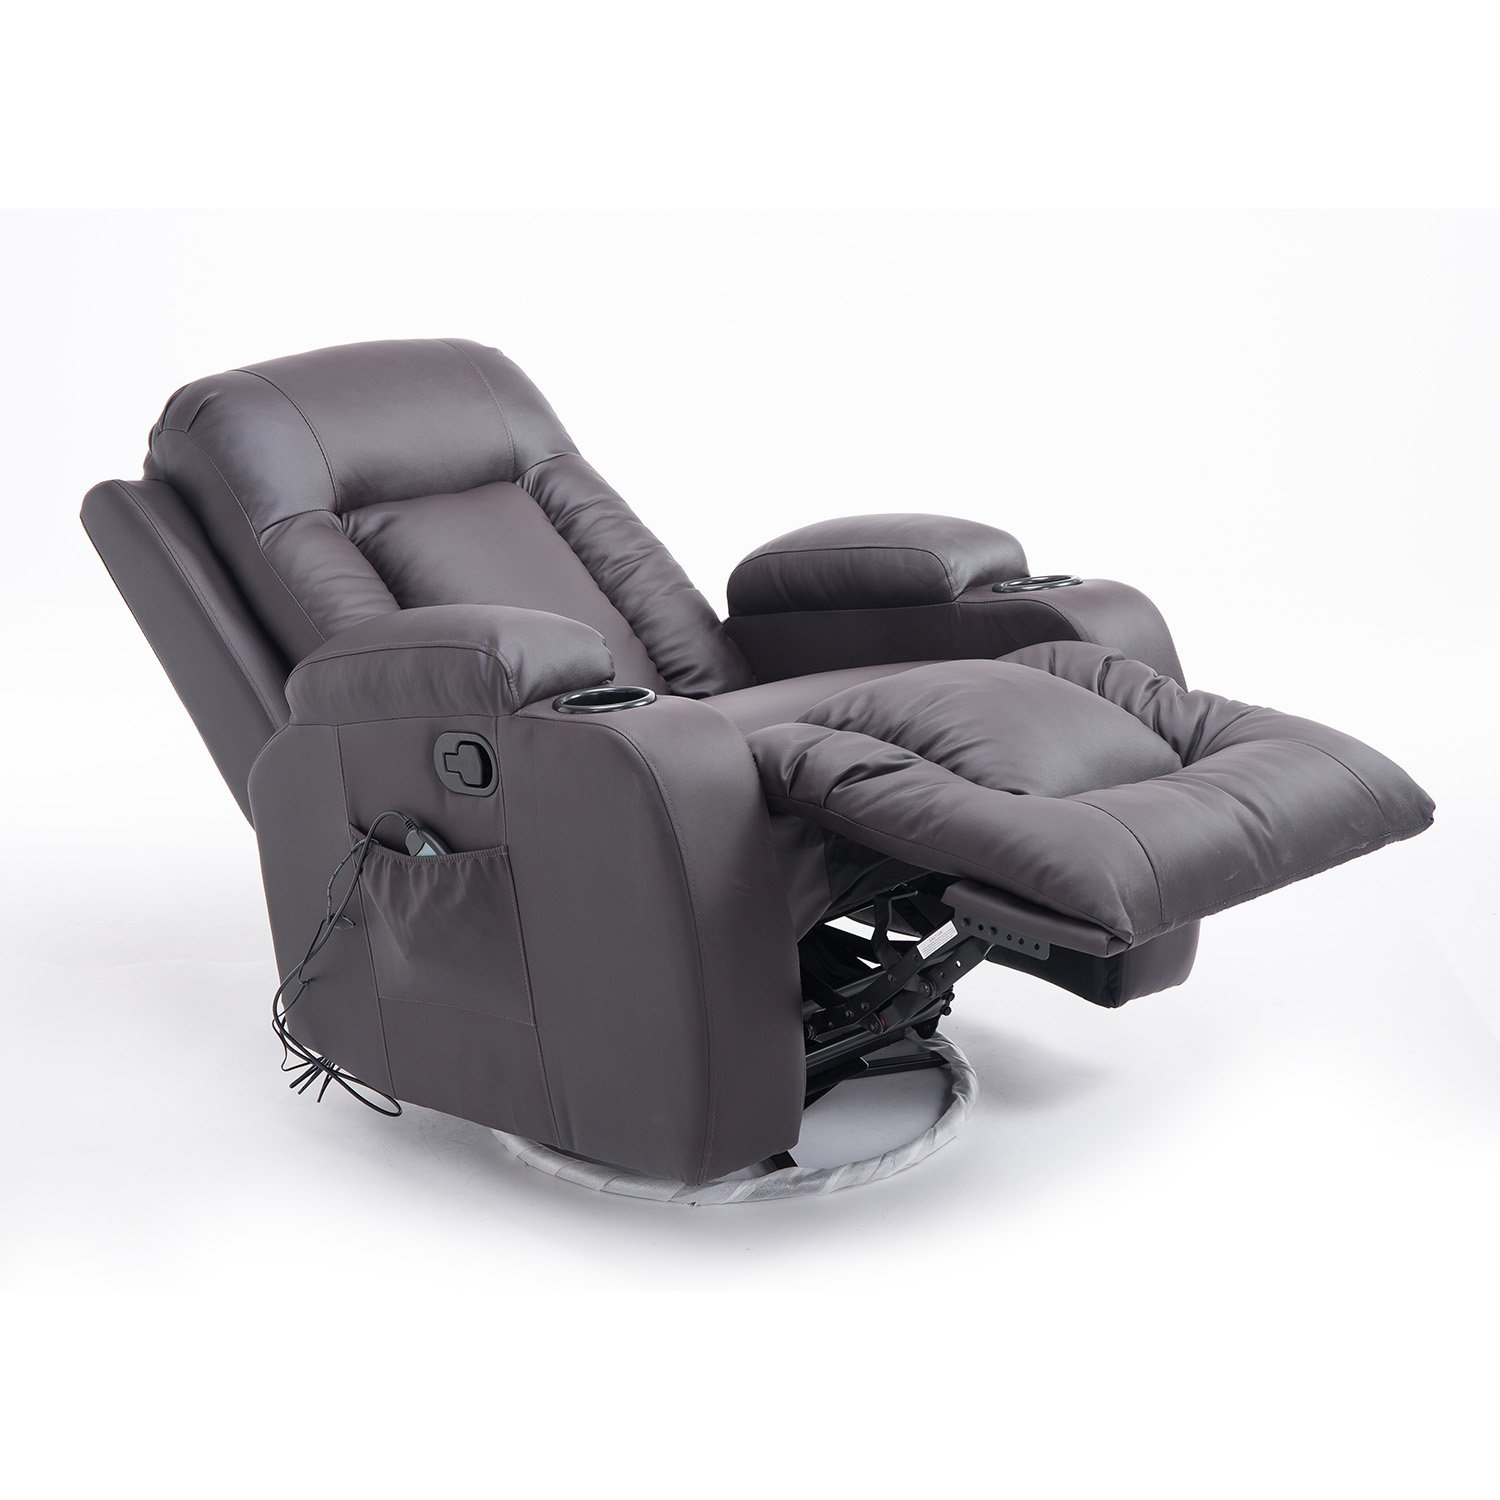 Amazon Hom PU Leather Heated Vibrating Massage Recliner